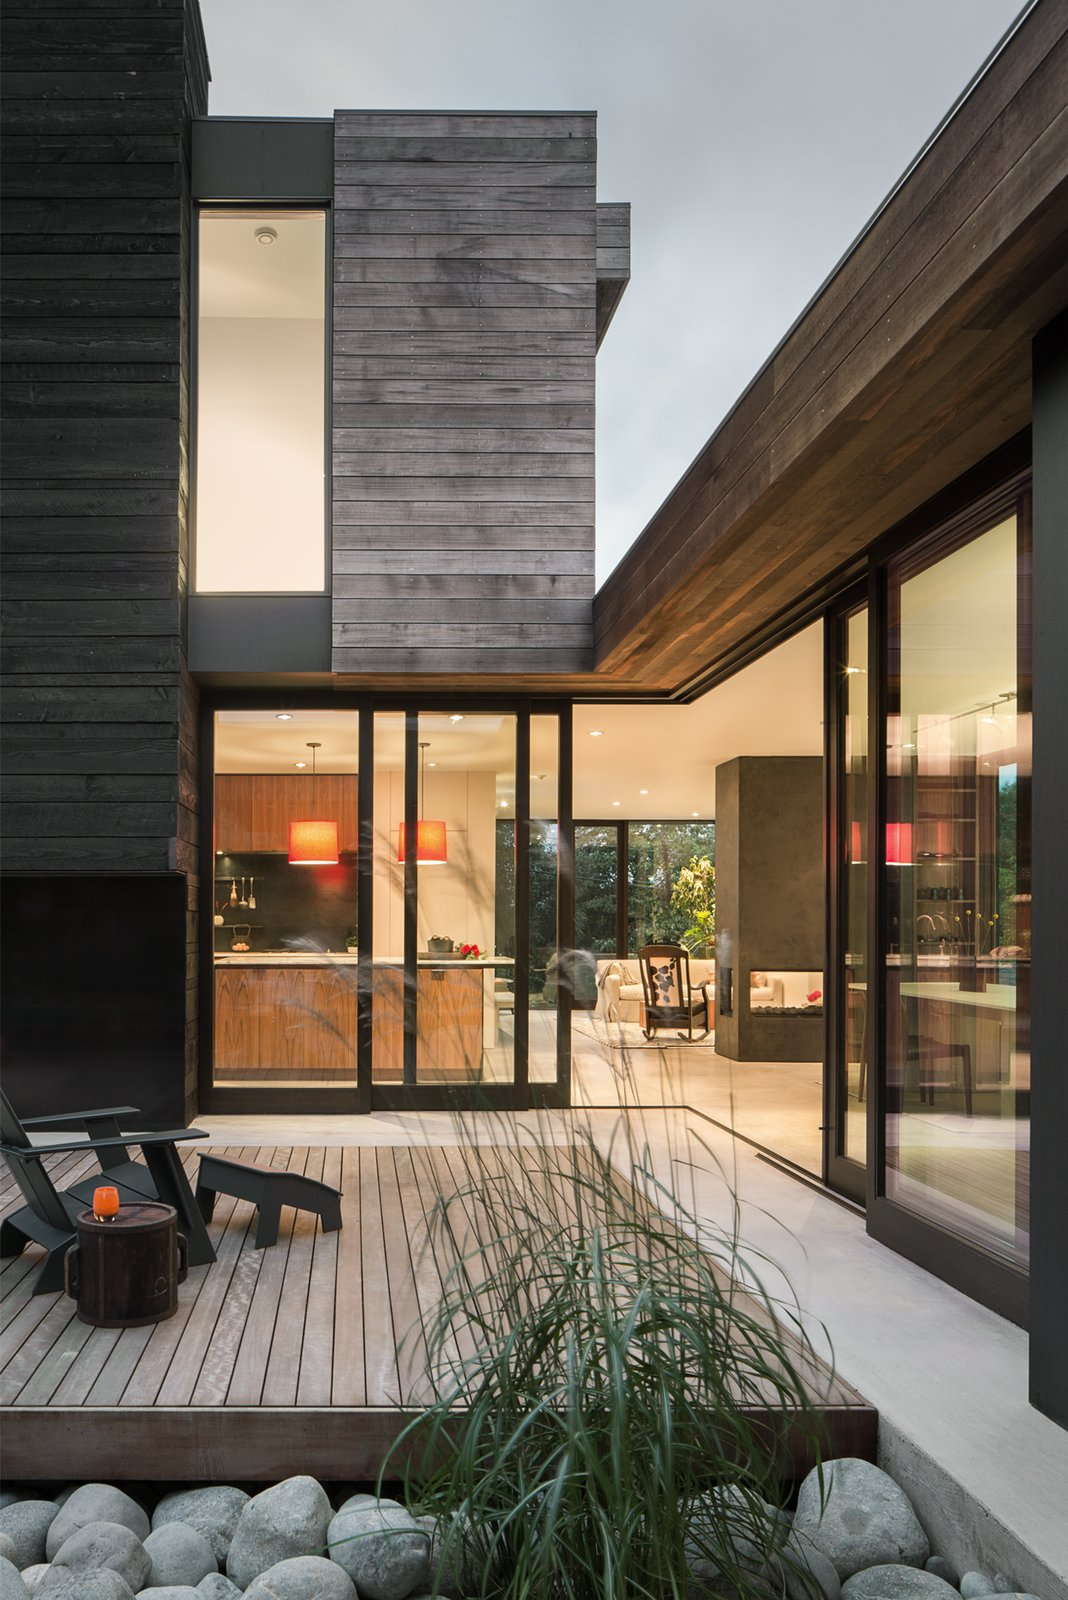 Outdoor, Small Patio, Porch, Deck, and Wood Patio, Porch, Deck Helen Street by mw|works  Helen Street by mwworks